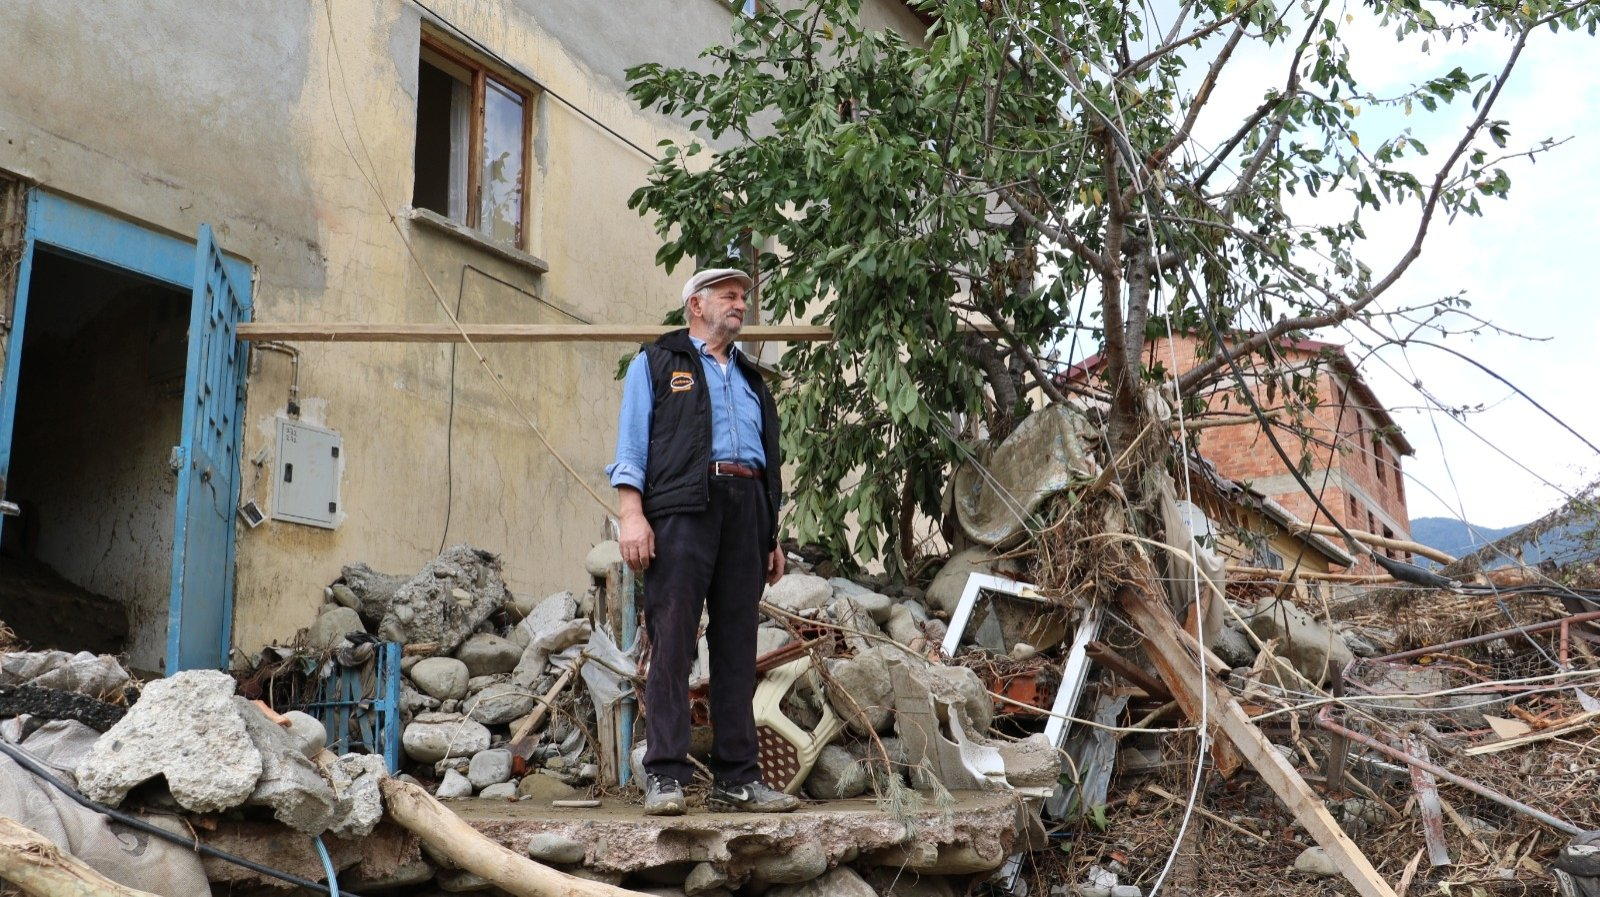 A man stands among debris outside his home in Babaçay, in Sinop, northern Turkey, Aug. 15, 2021. (DHA PHOTO)